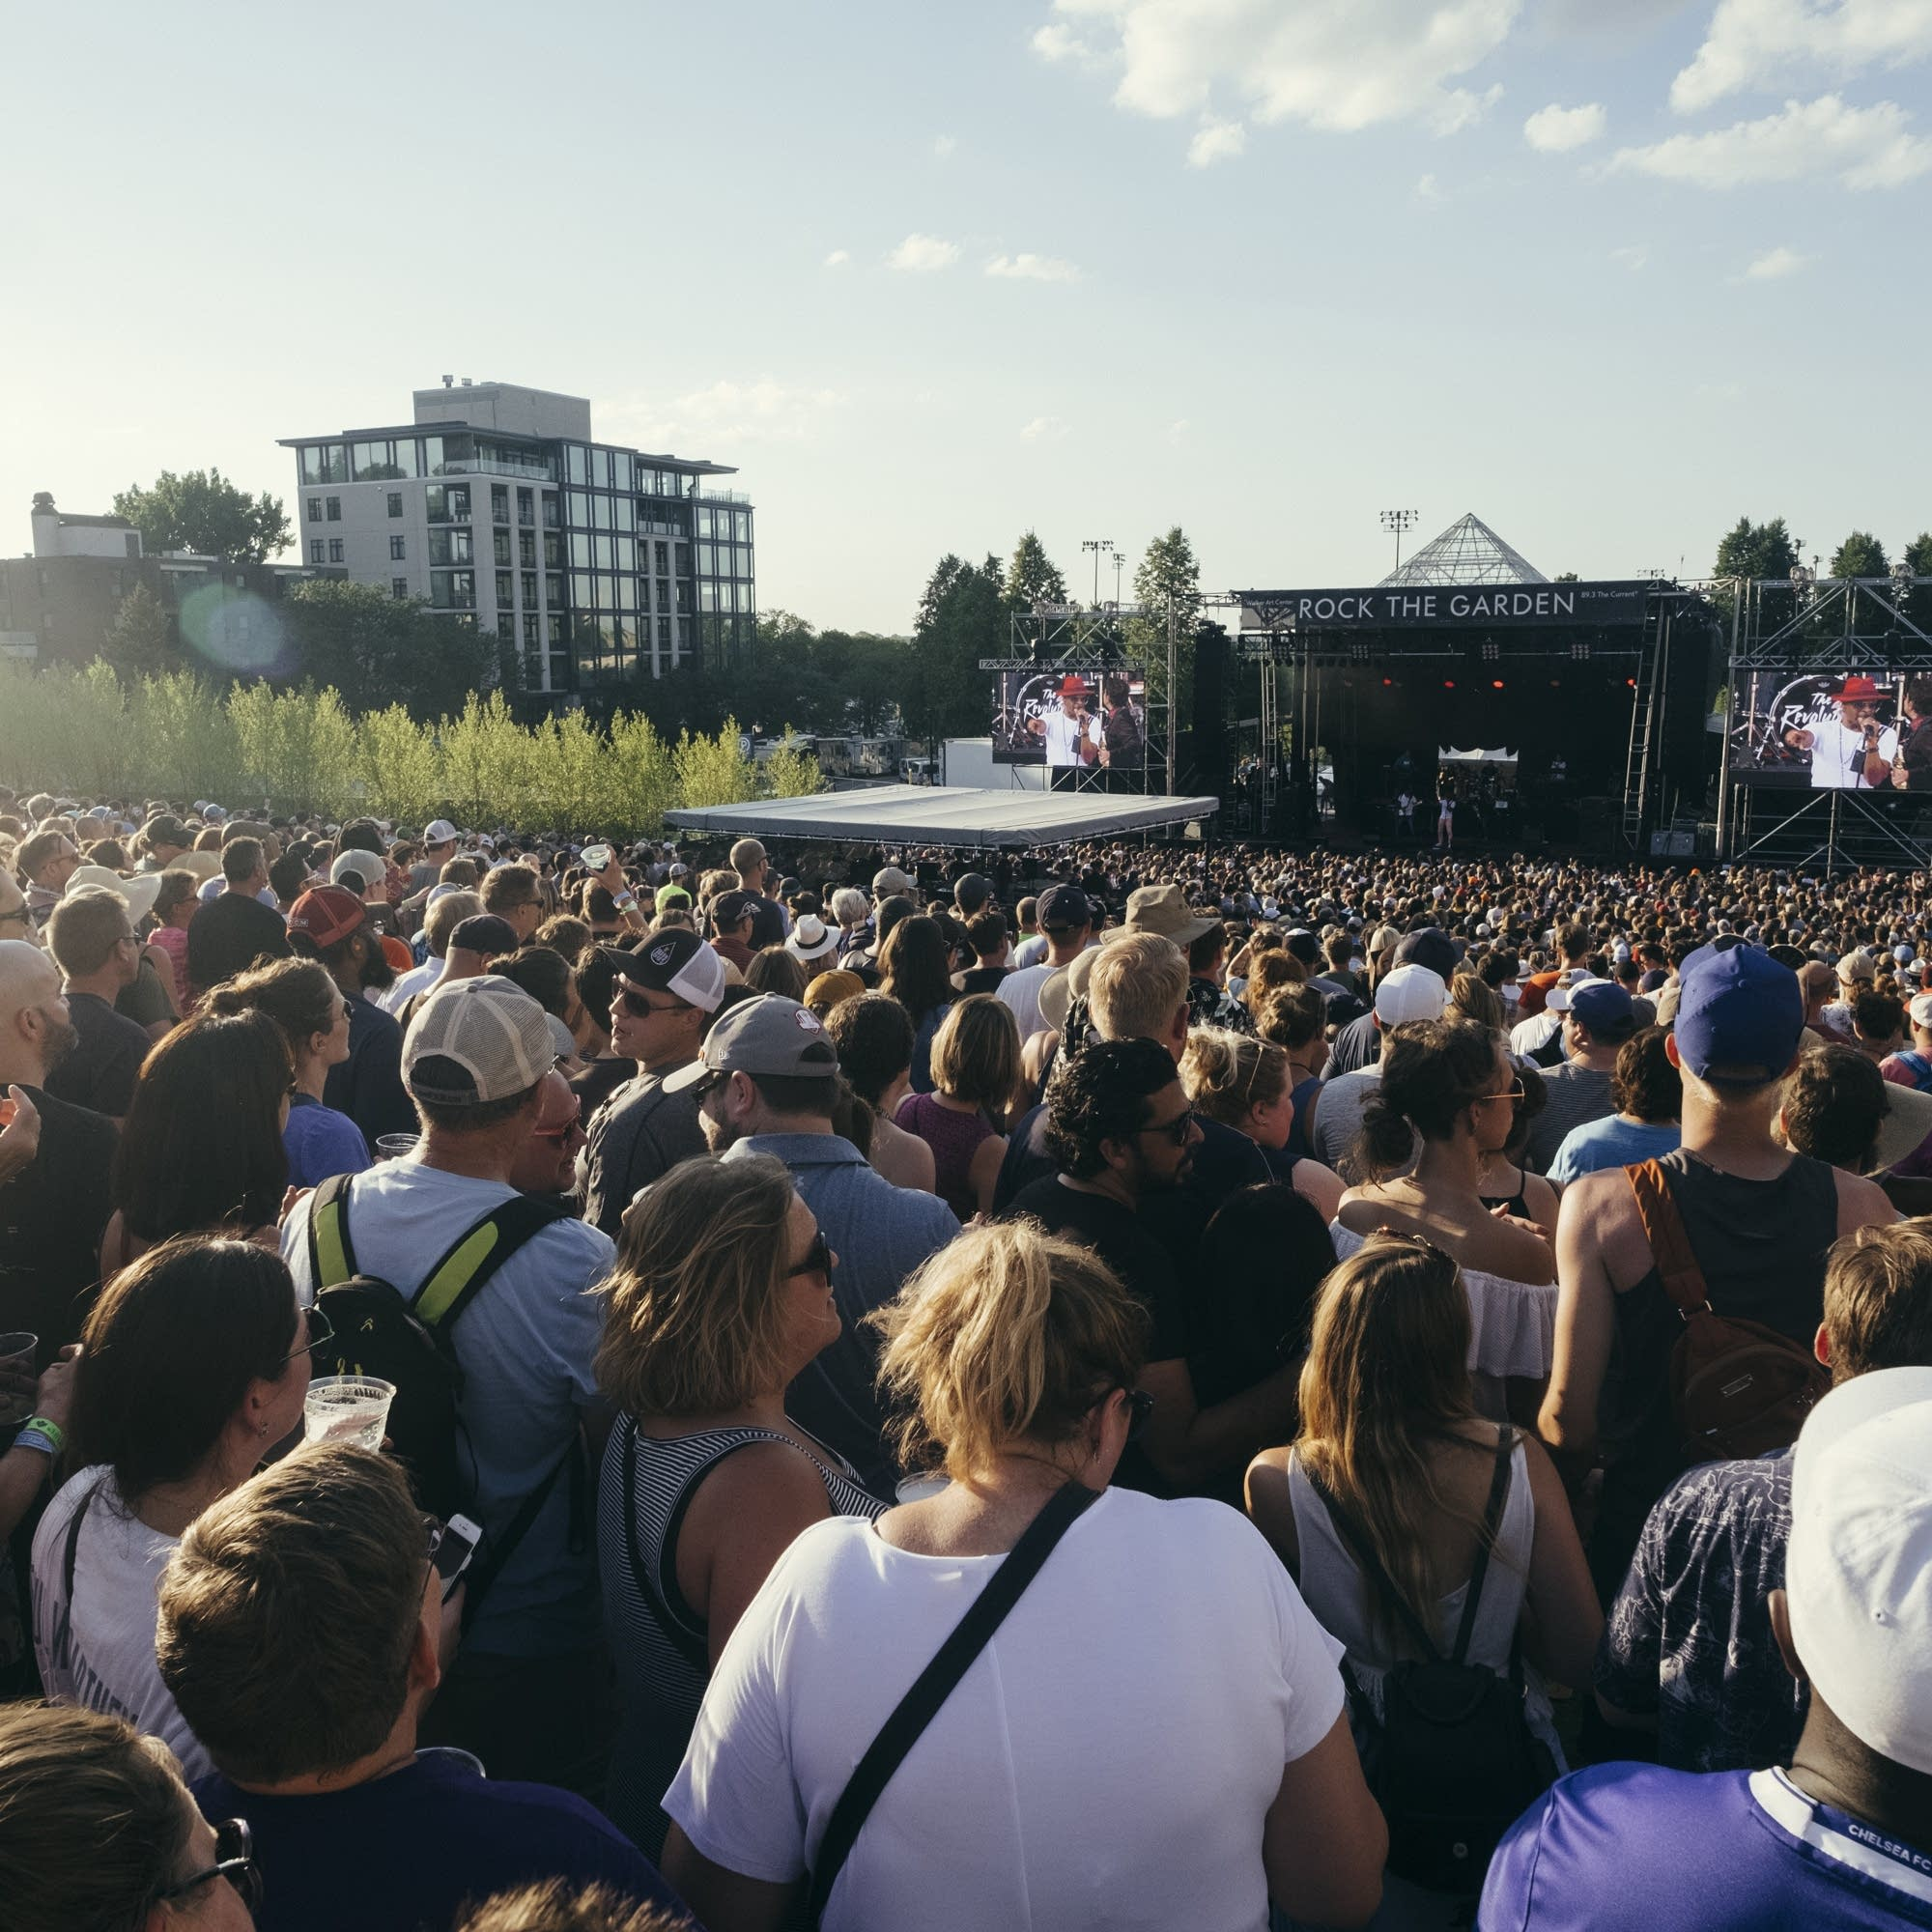 Crowds at sunset during Rock the Garden